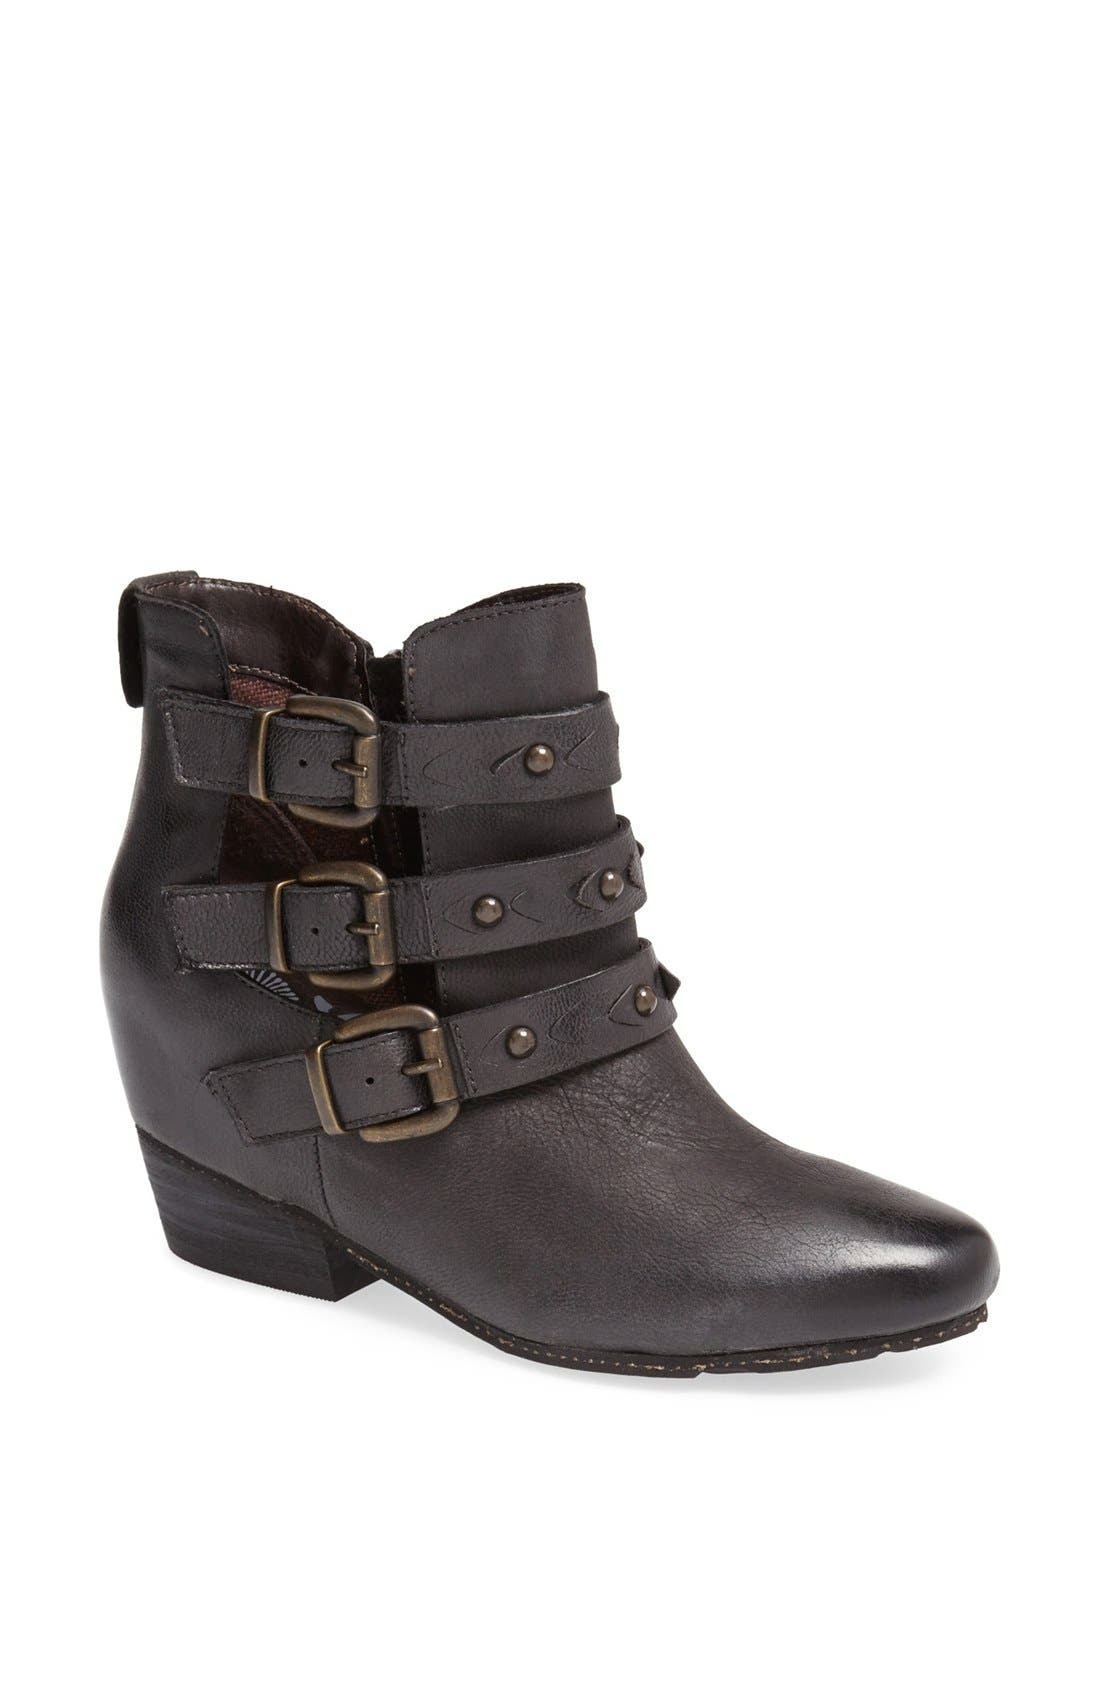 Alternate Image 1 Selected - OTBT 'Valley View' Bootie